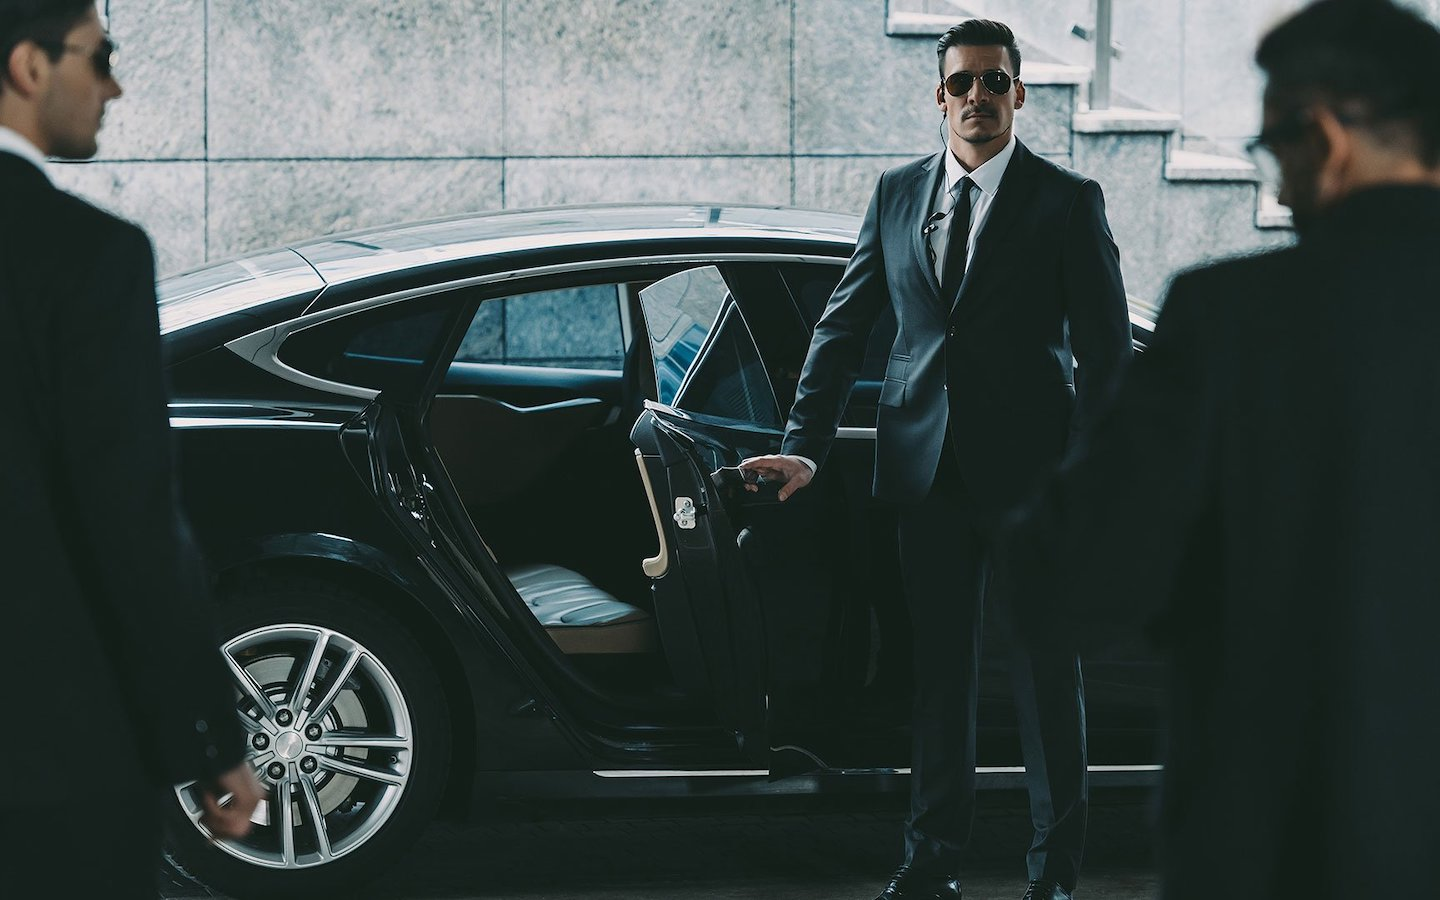 bodyguard and close protection service in Bangkok